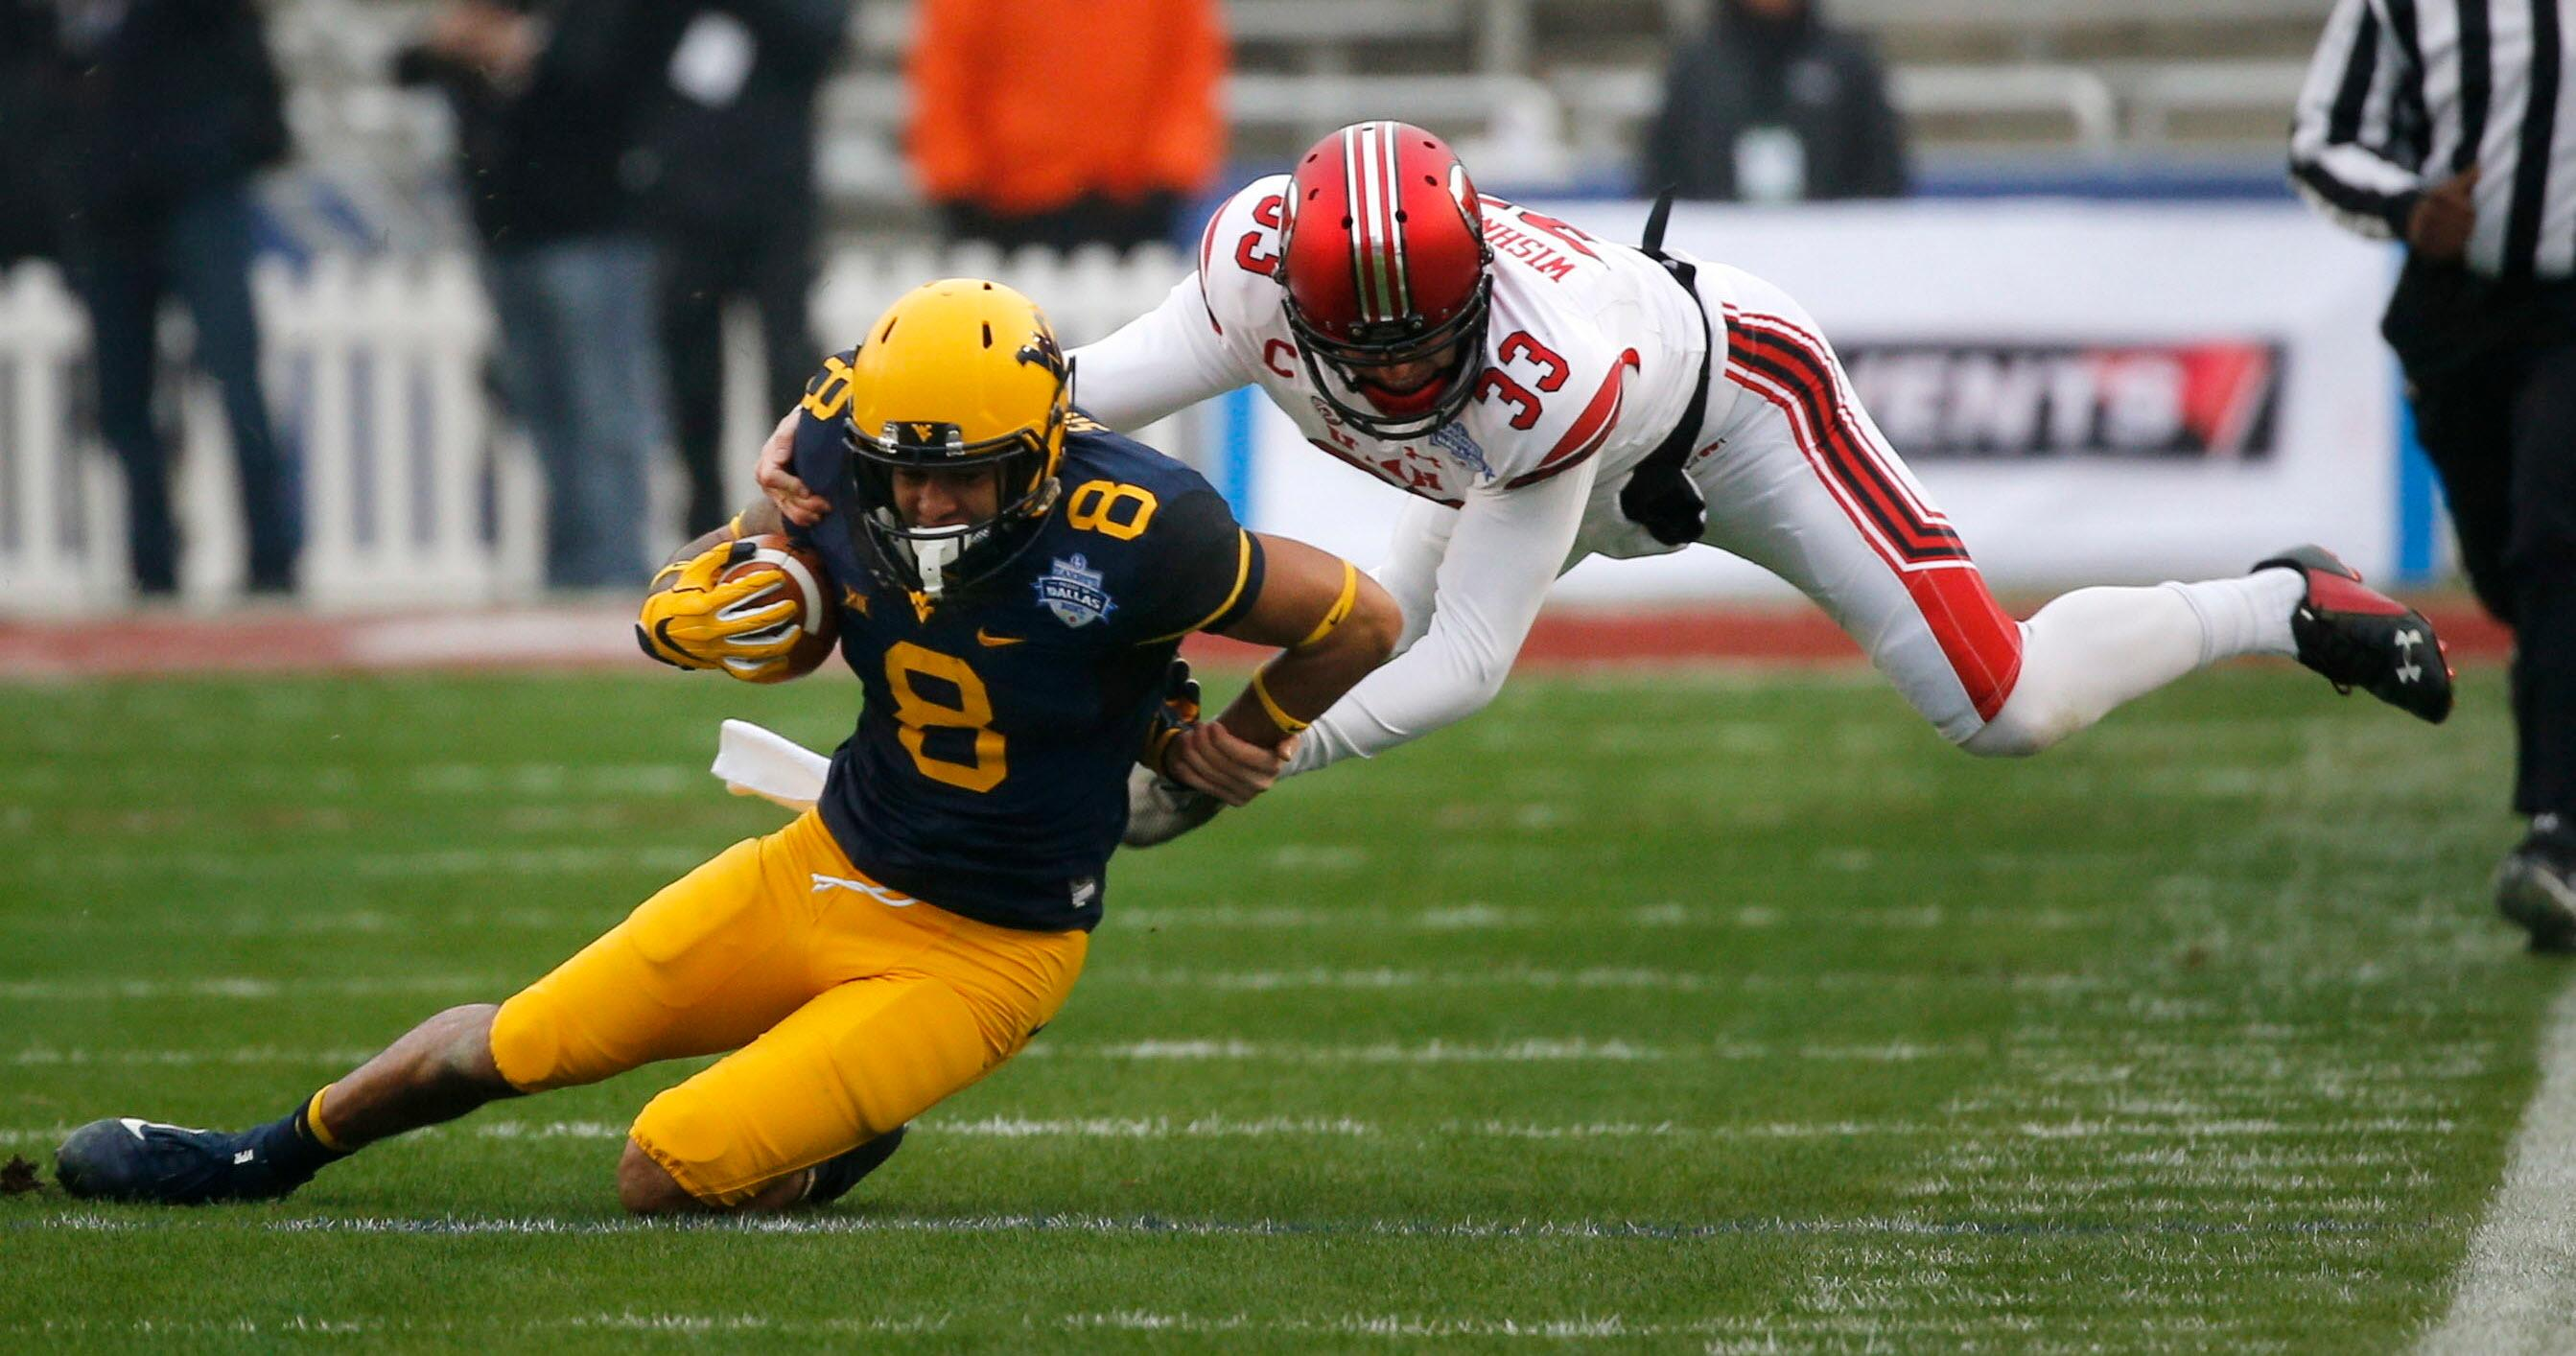 West Virginia wide receiver Marcus Simms (8) is brought down by Utah's Mitch Wishnowsky (33) during the first half of Zaxby's Heart of Dallas Bowl at Cotton Bowl Stadium in Dallas on Tuesday, Dec. 26, 2017. (Rose Baca/The Dallas Morning News via AP)